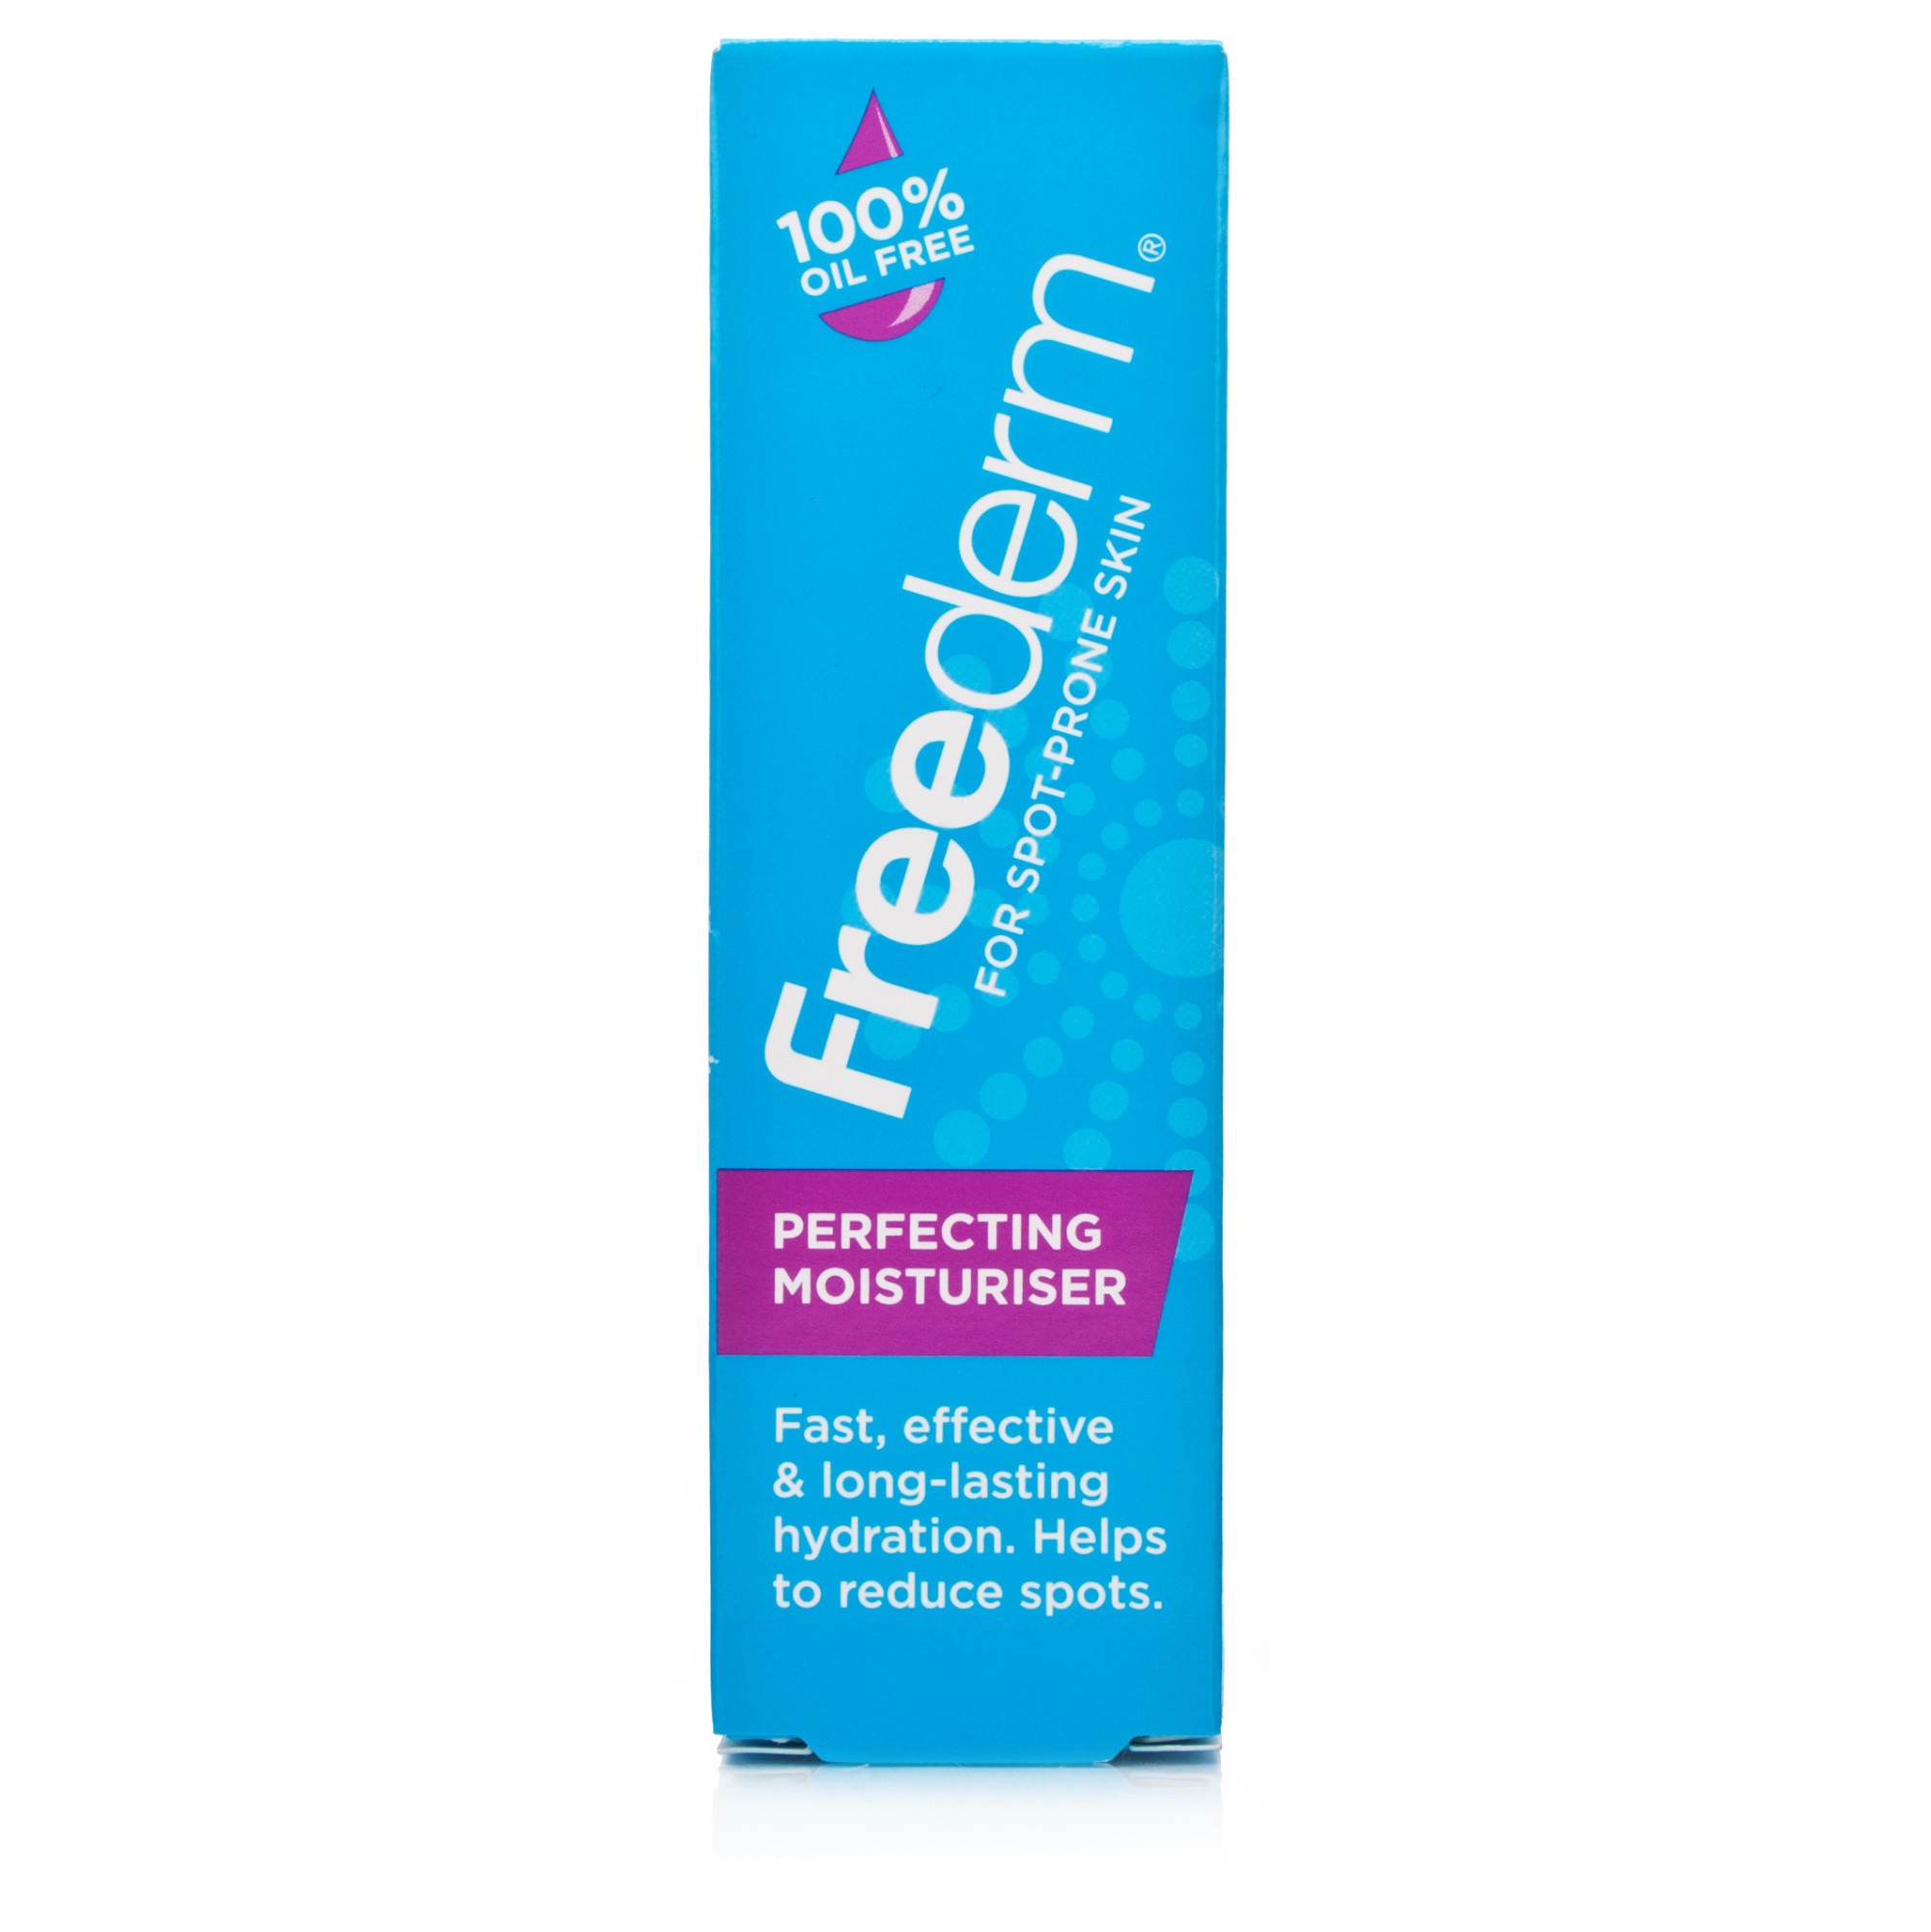 Freederm Oil Free Perfecting Moisturiser